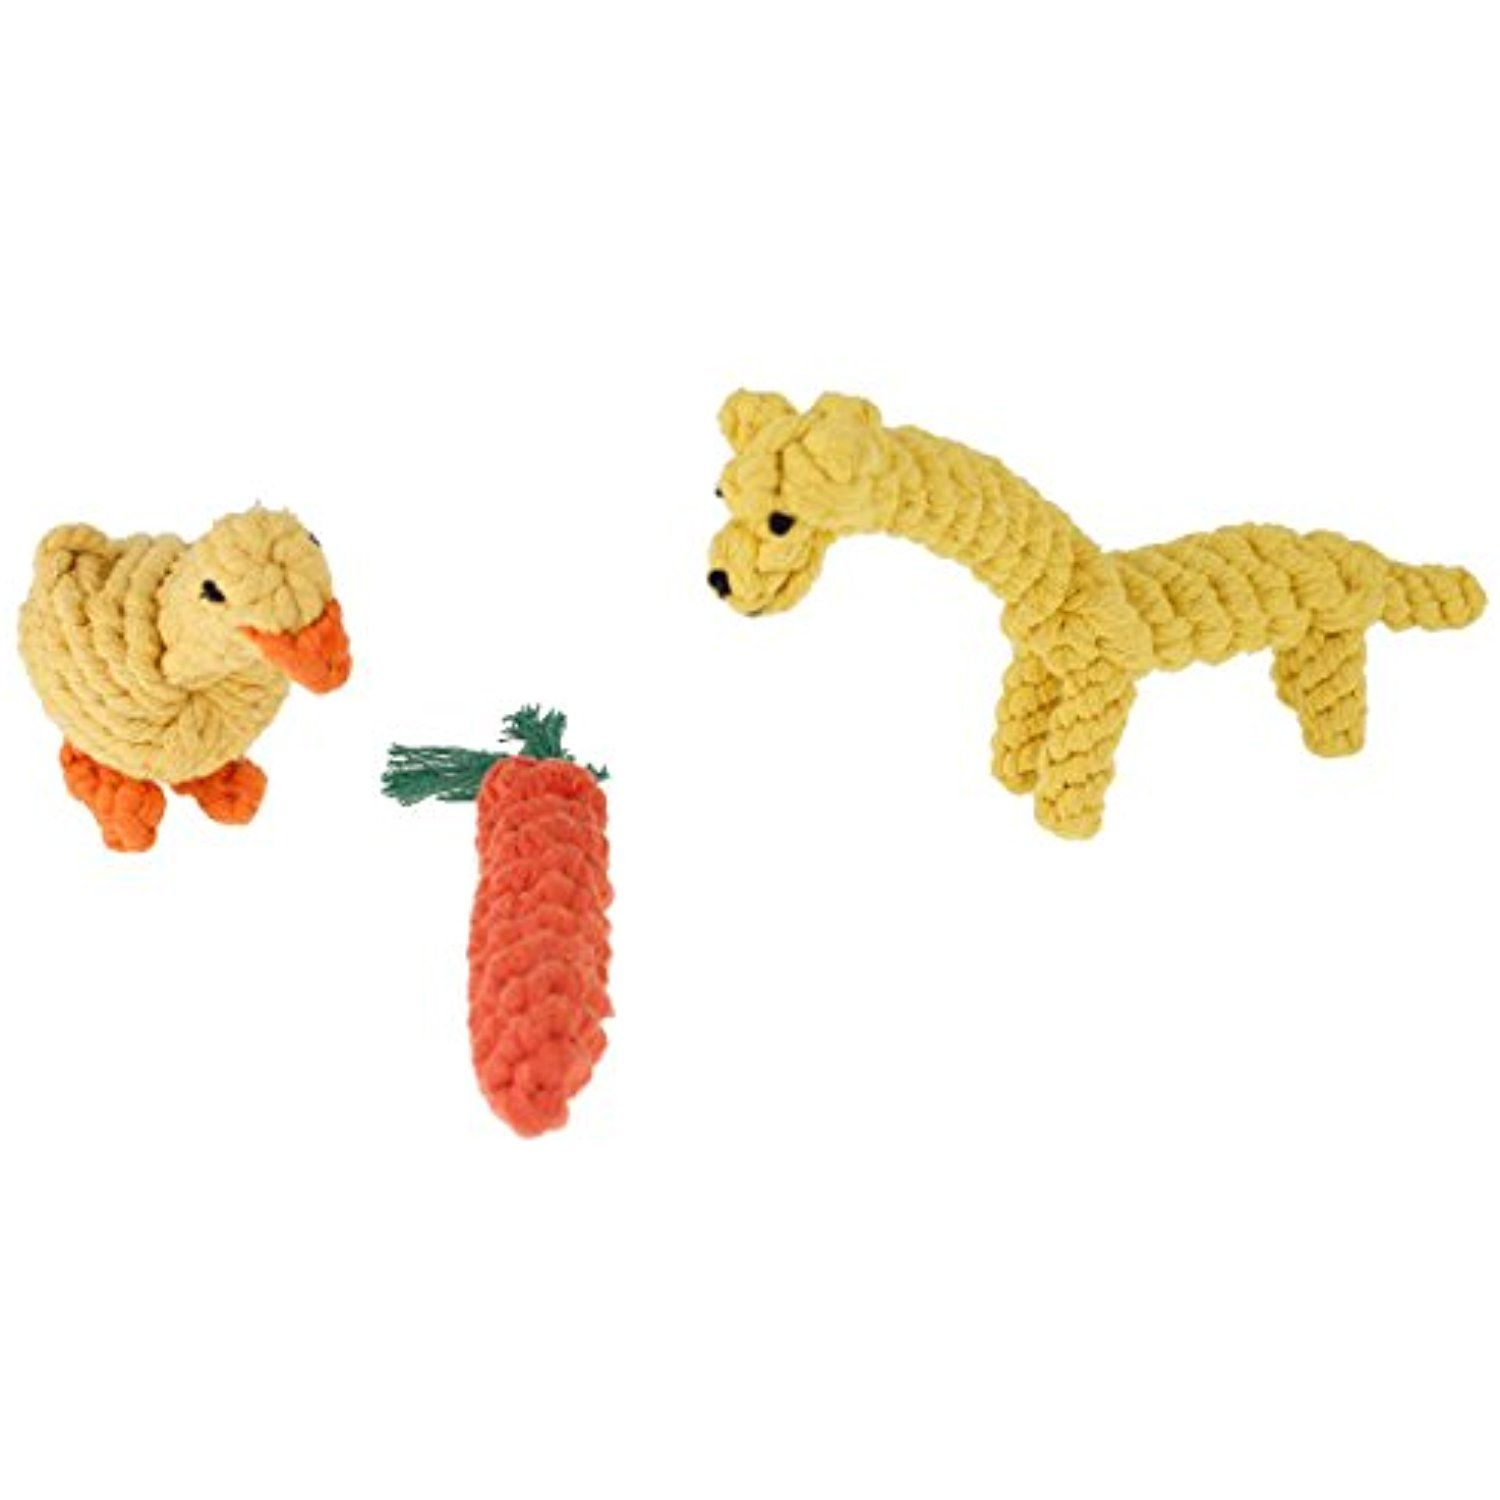 3 Pack Dogs Chew Toy Animal Design Cotton Rope Dog Toys With Puppy